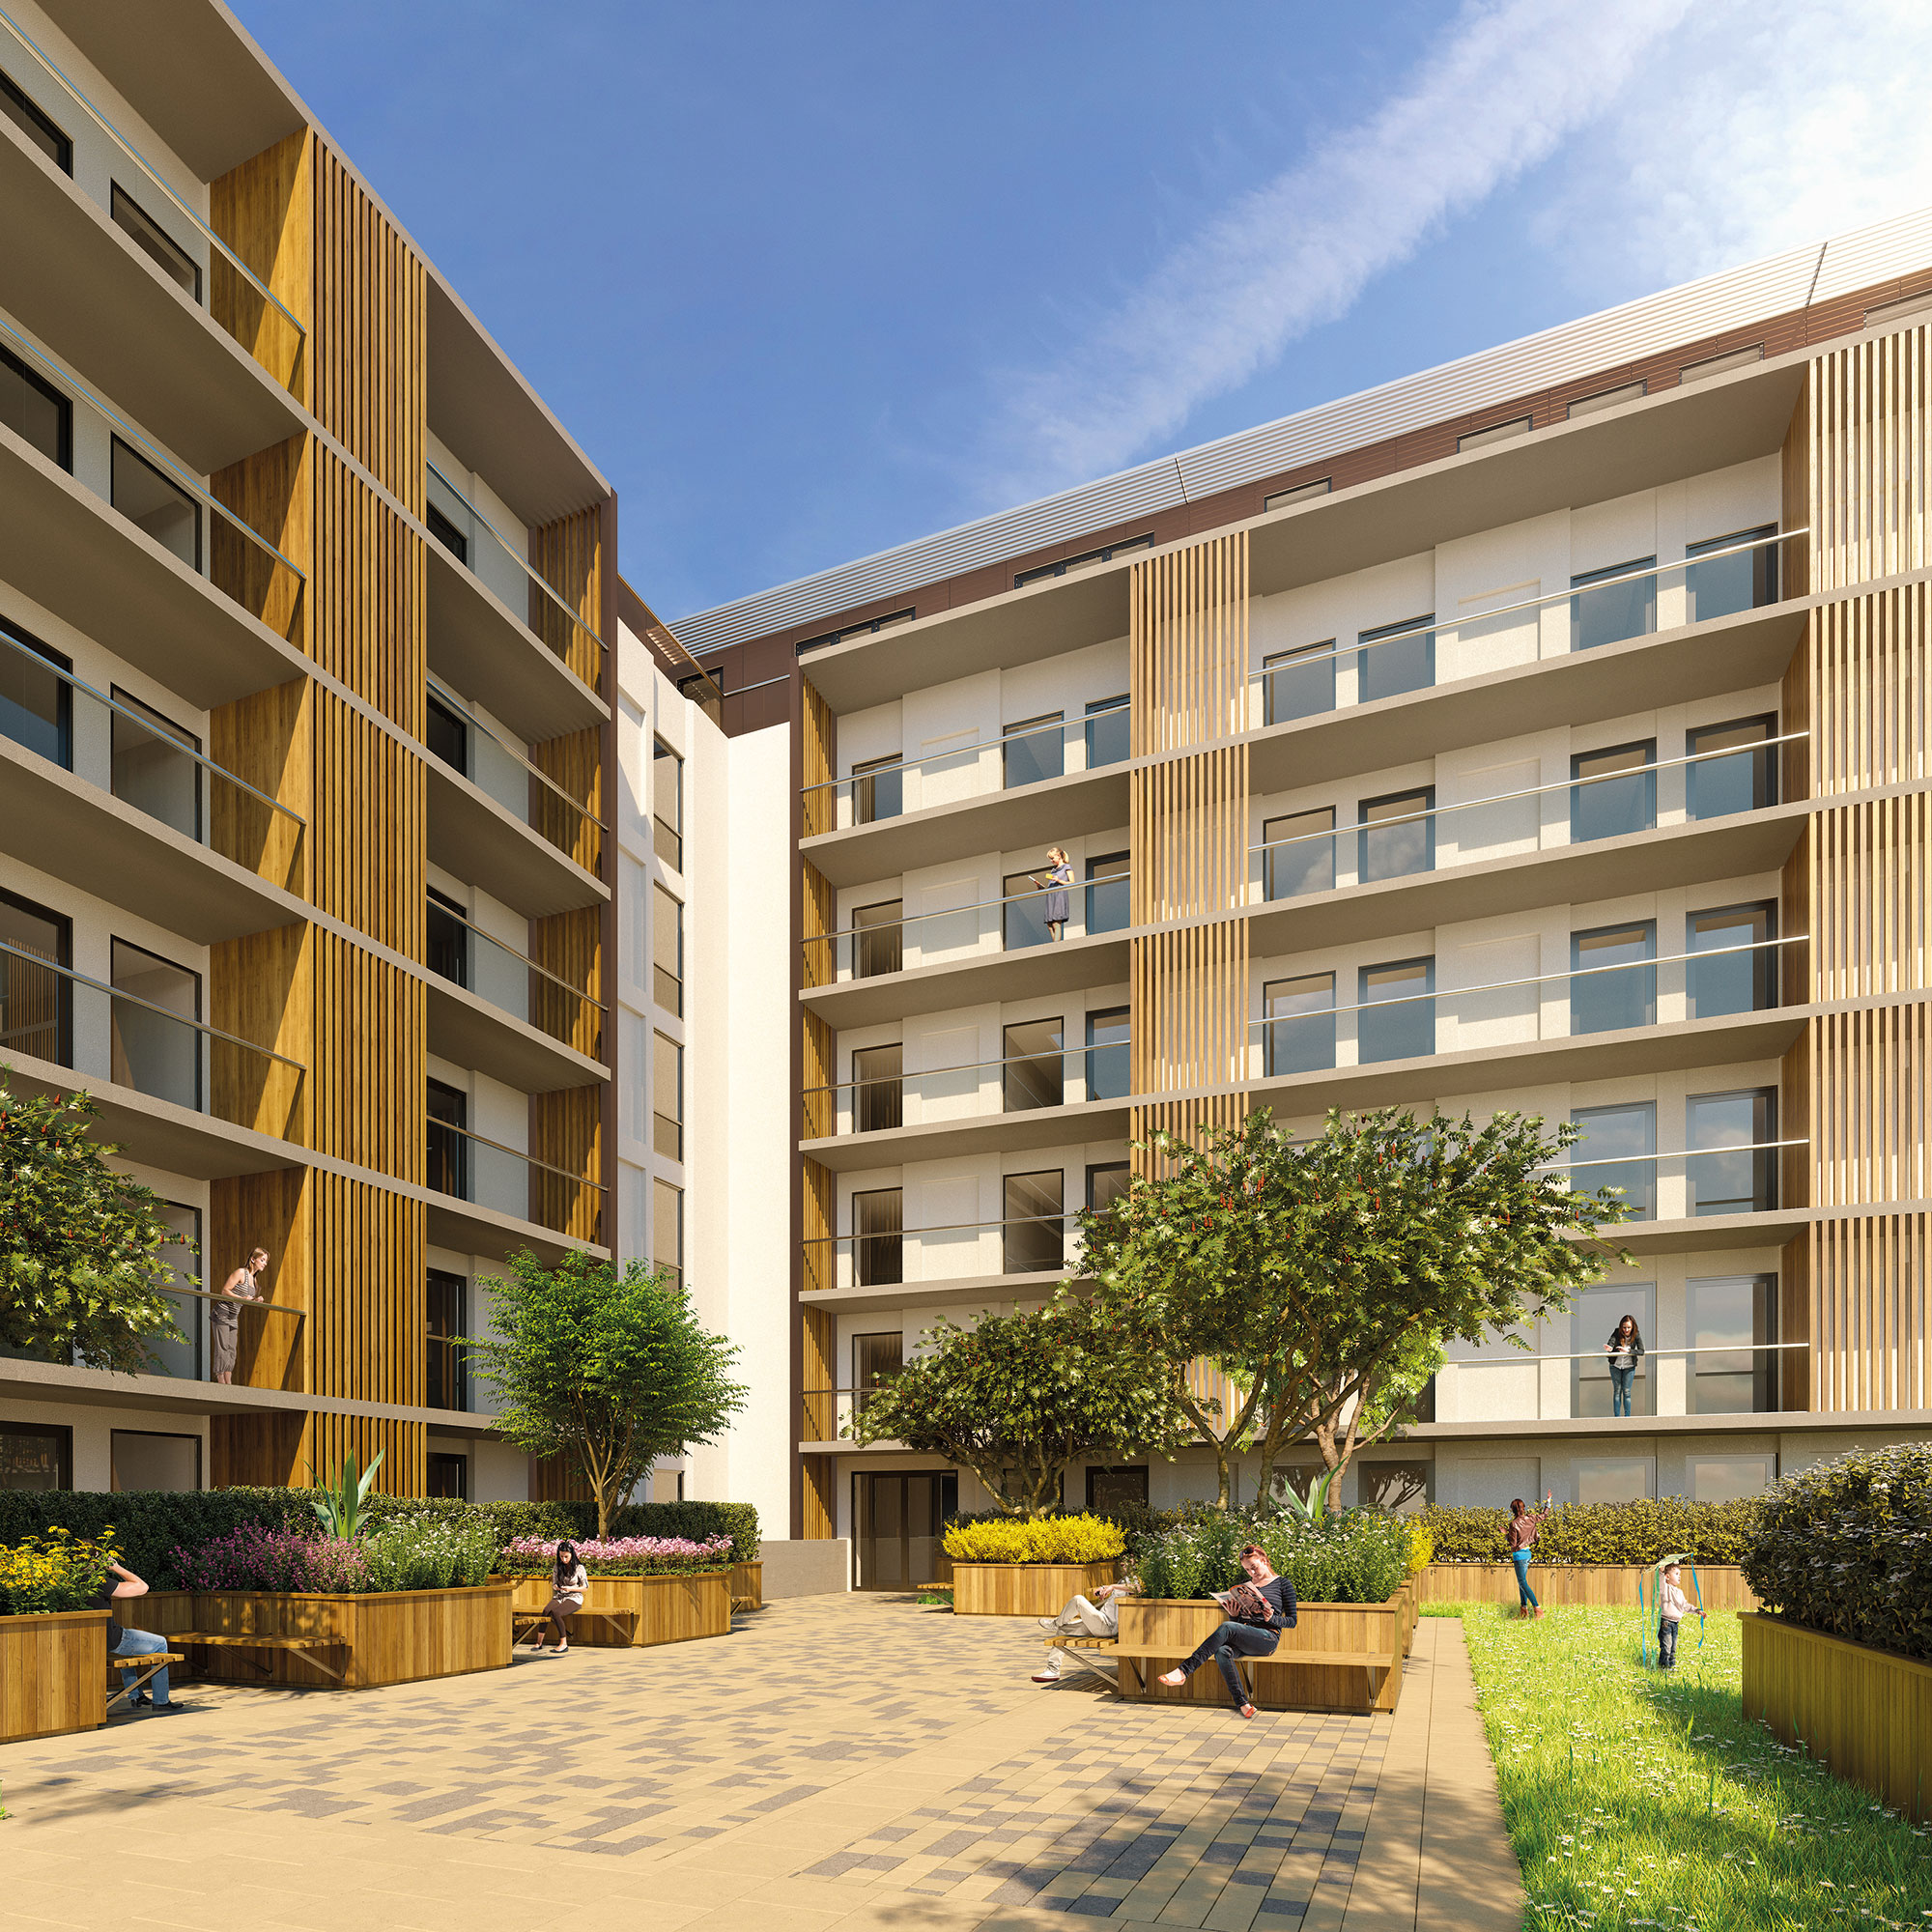 Farnborough 1 & 2 Bedroom Apartments for Sale